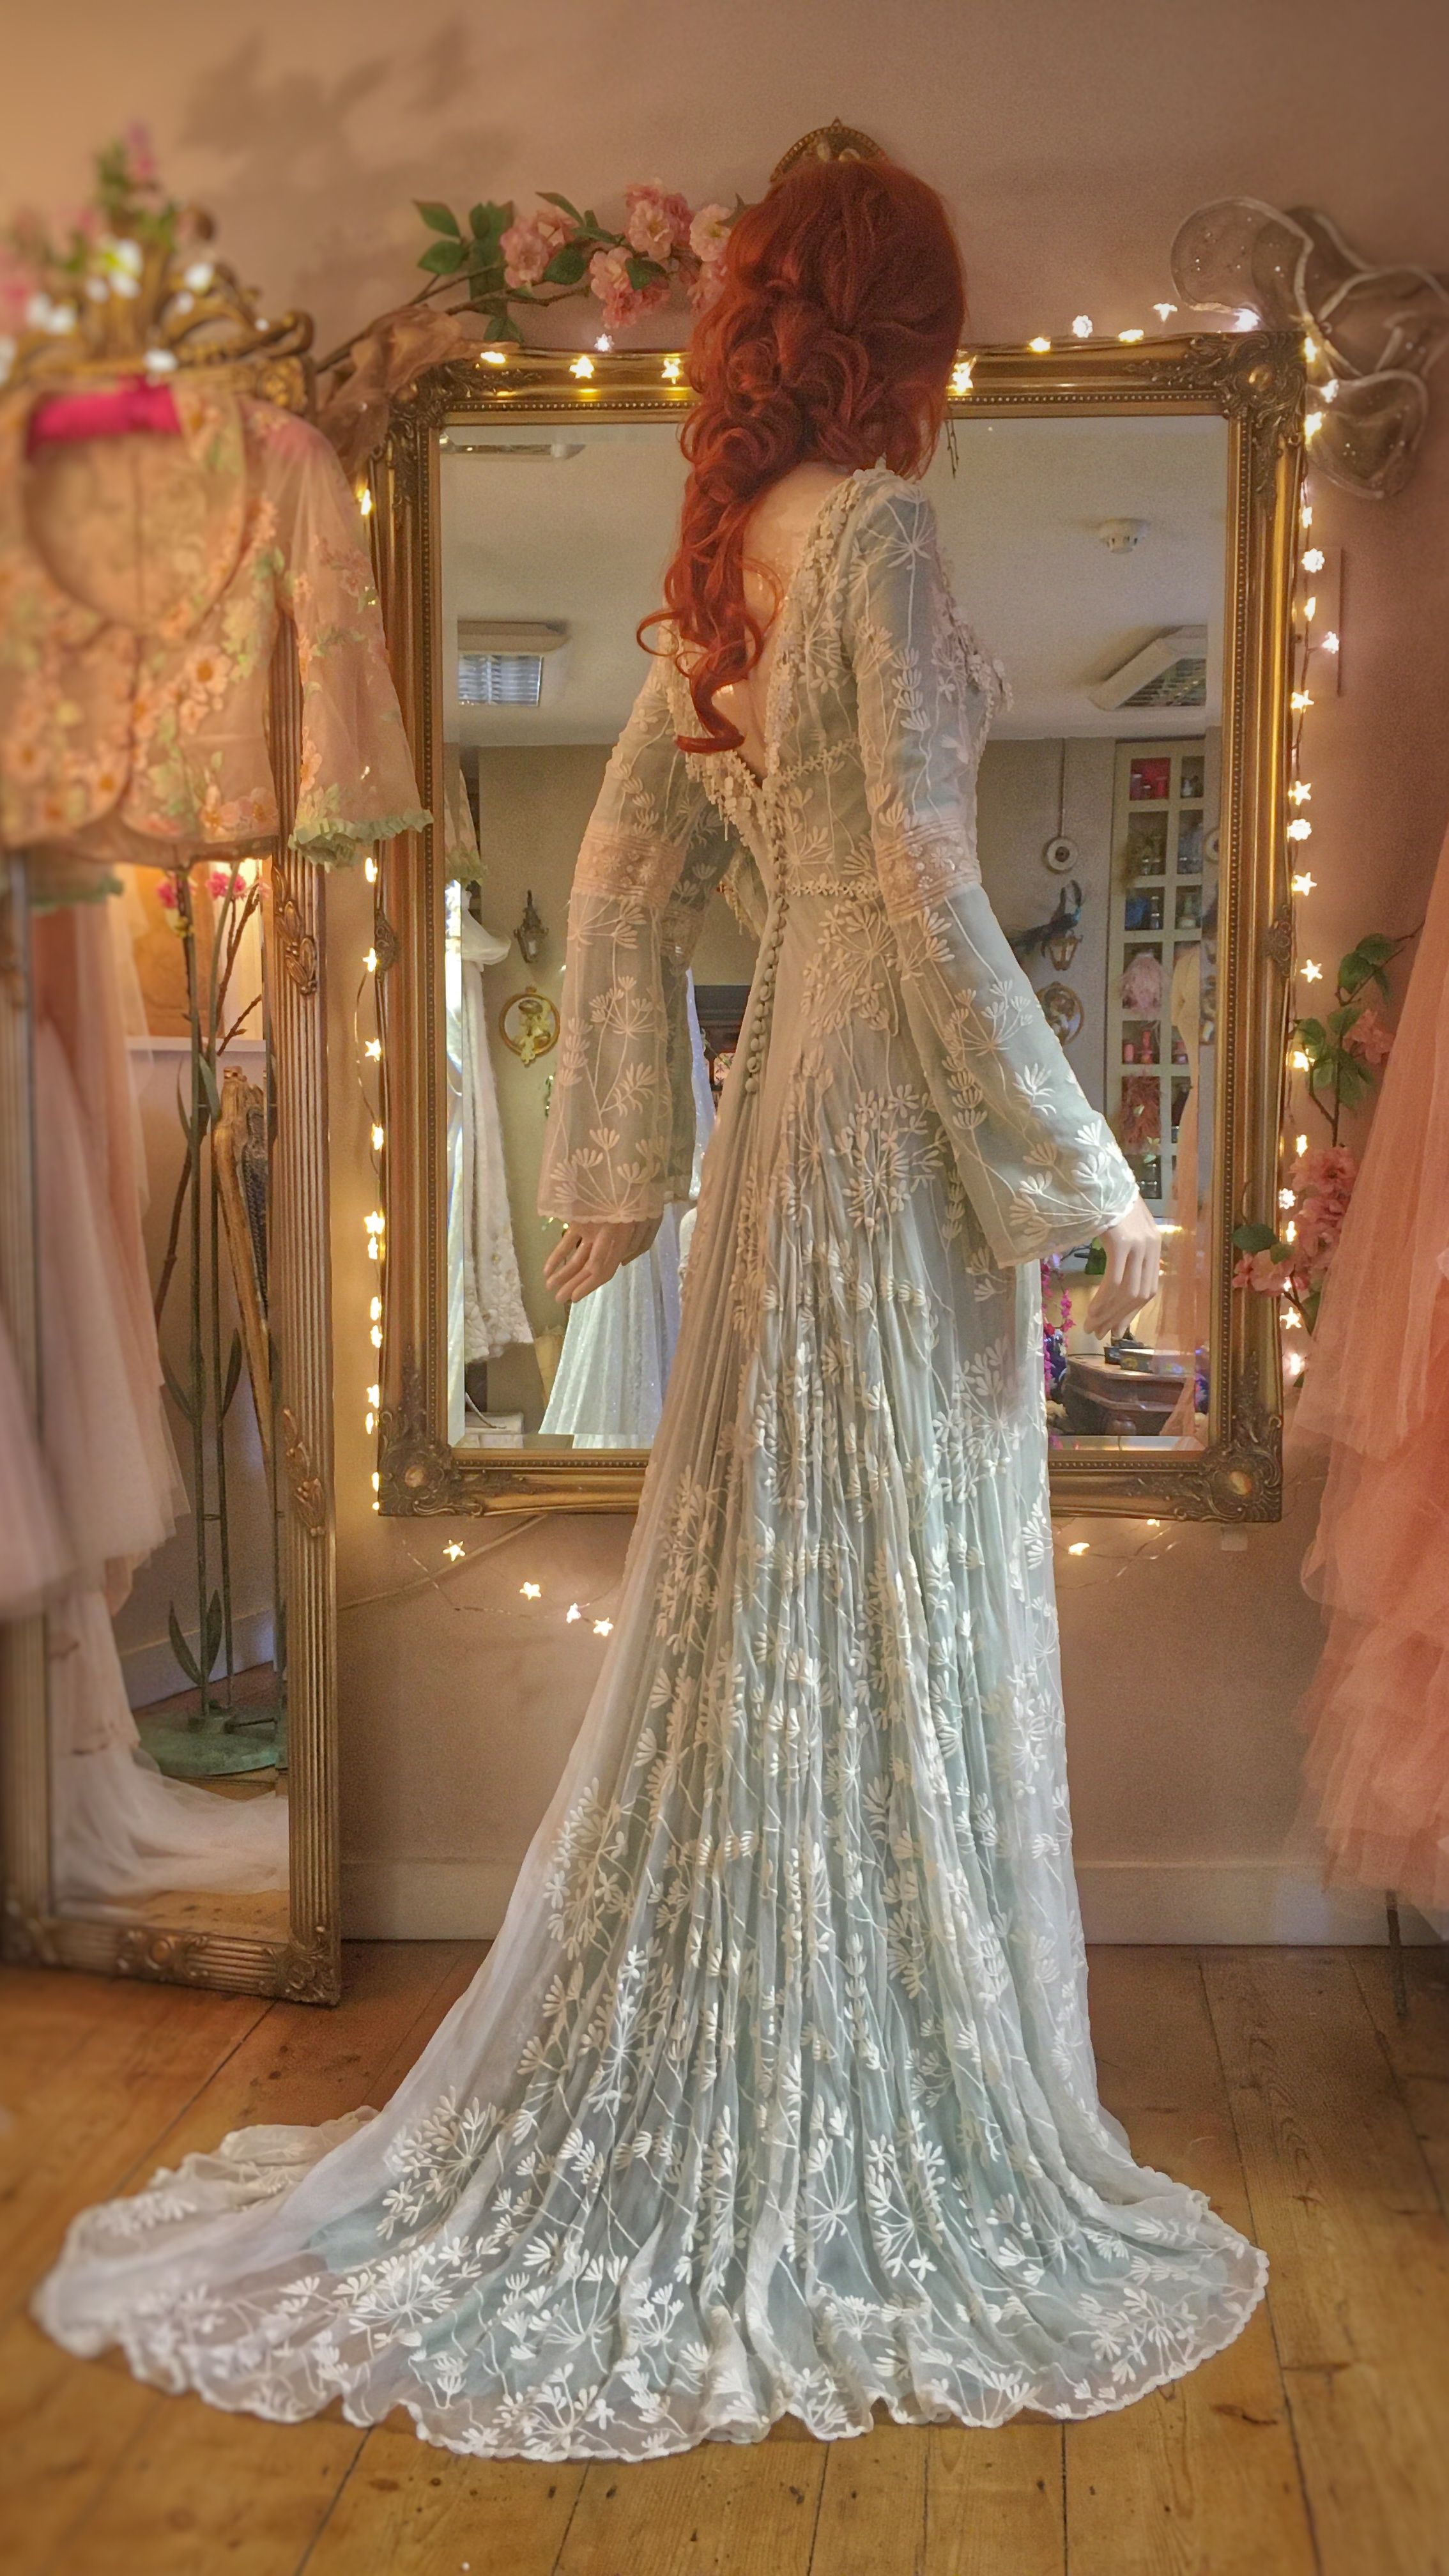 2020 Best Wedding Dress New Dress Most Expensive Dress In The World Pakistani Bridal Dresses Online